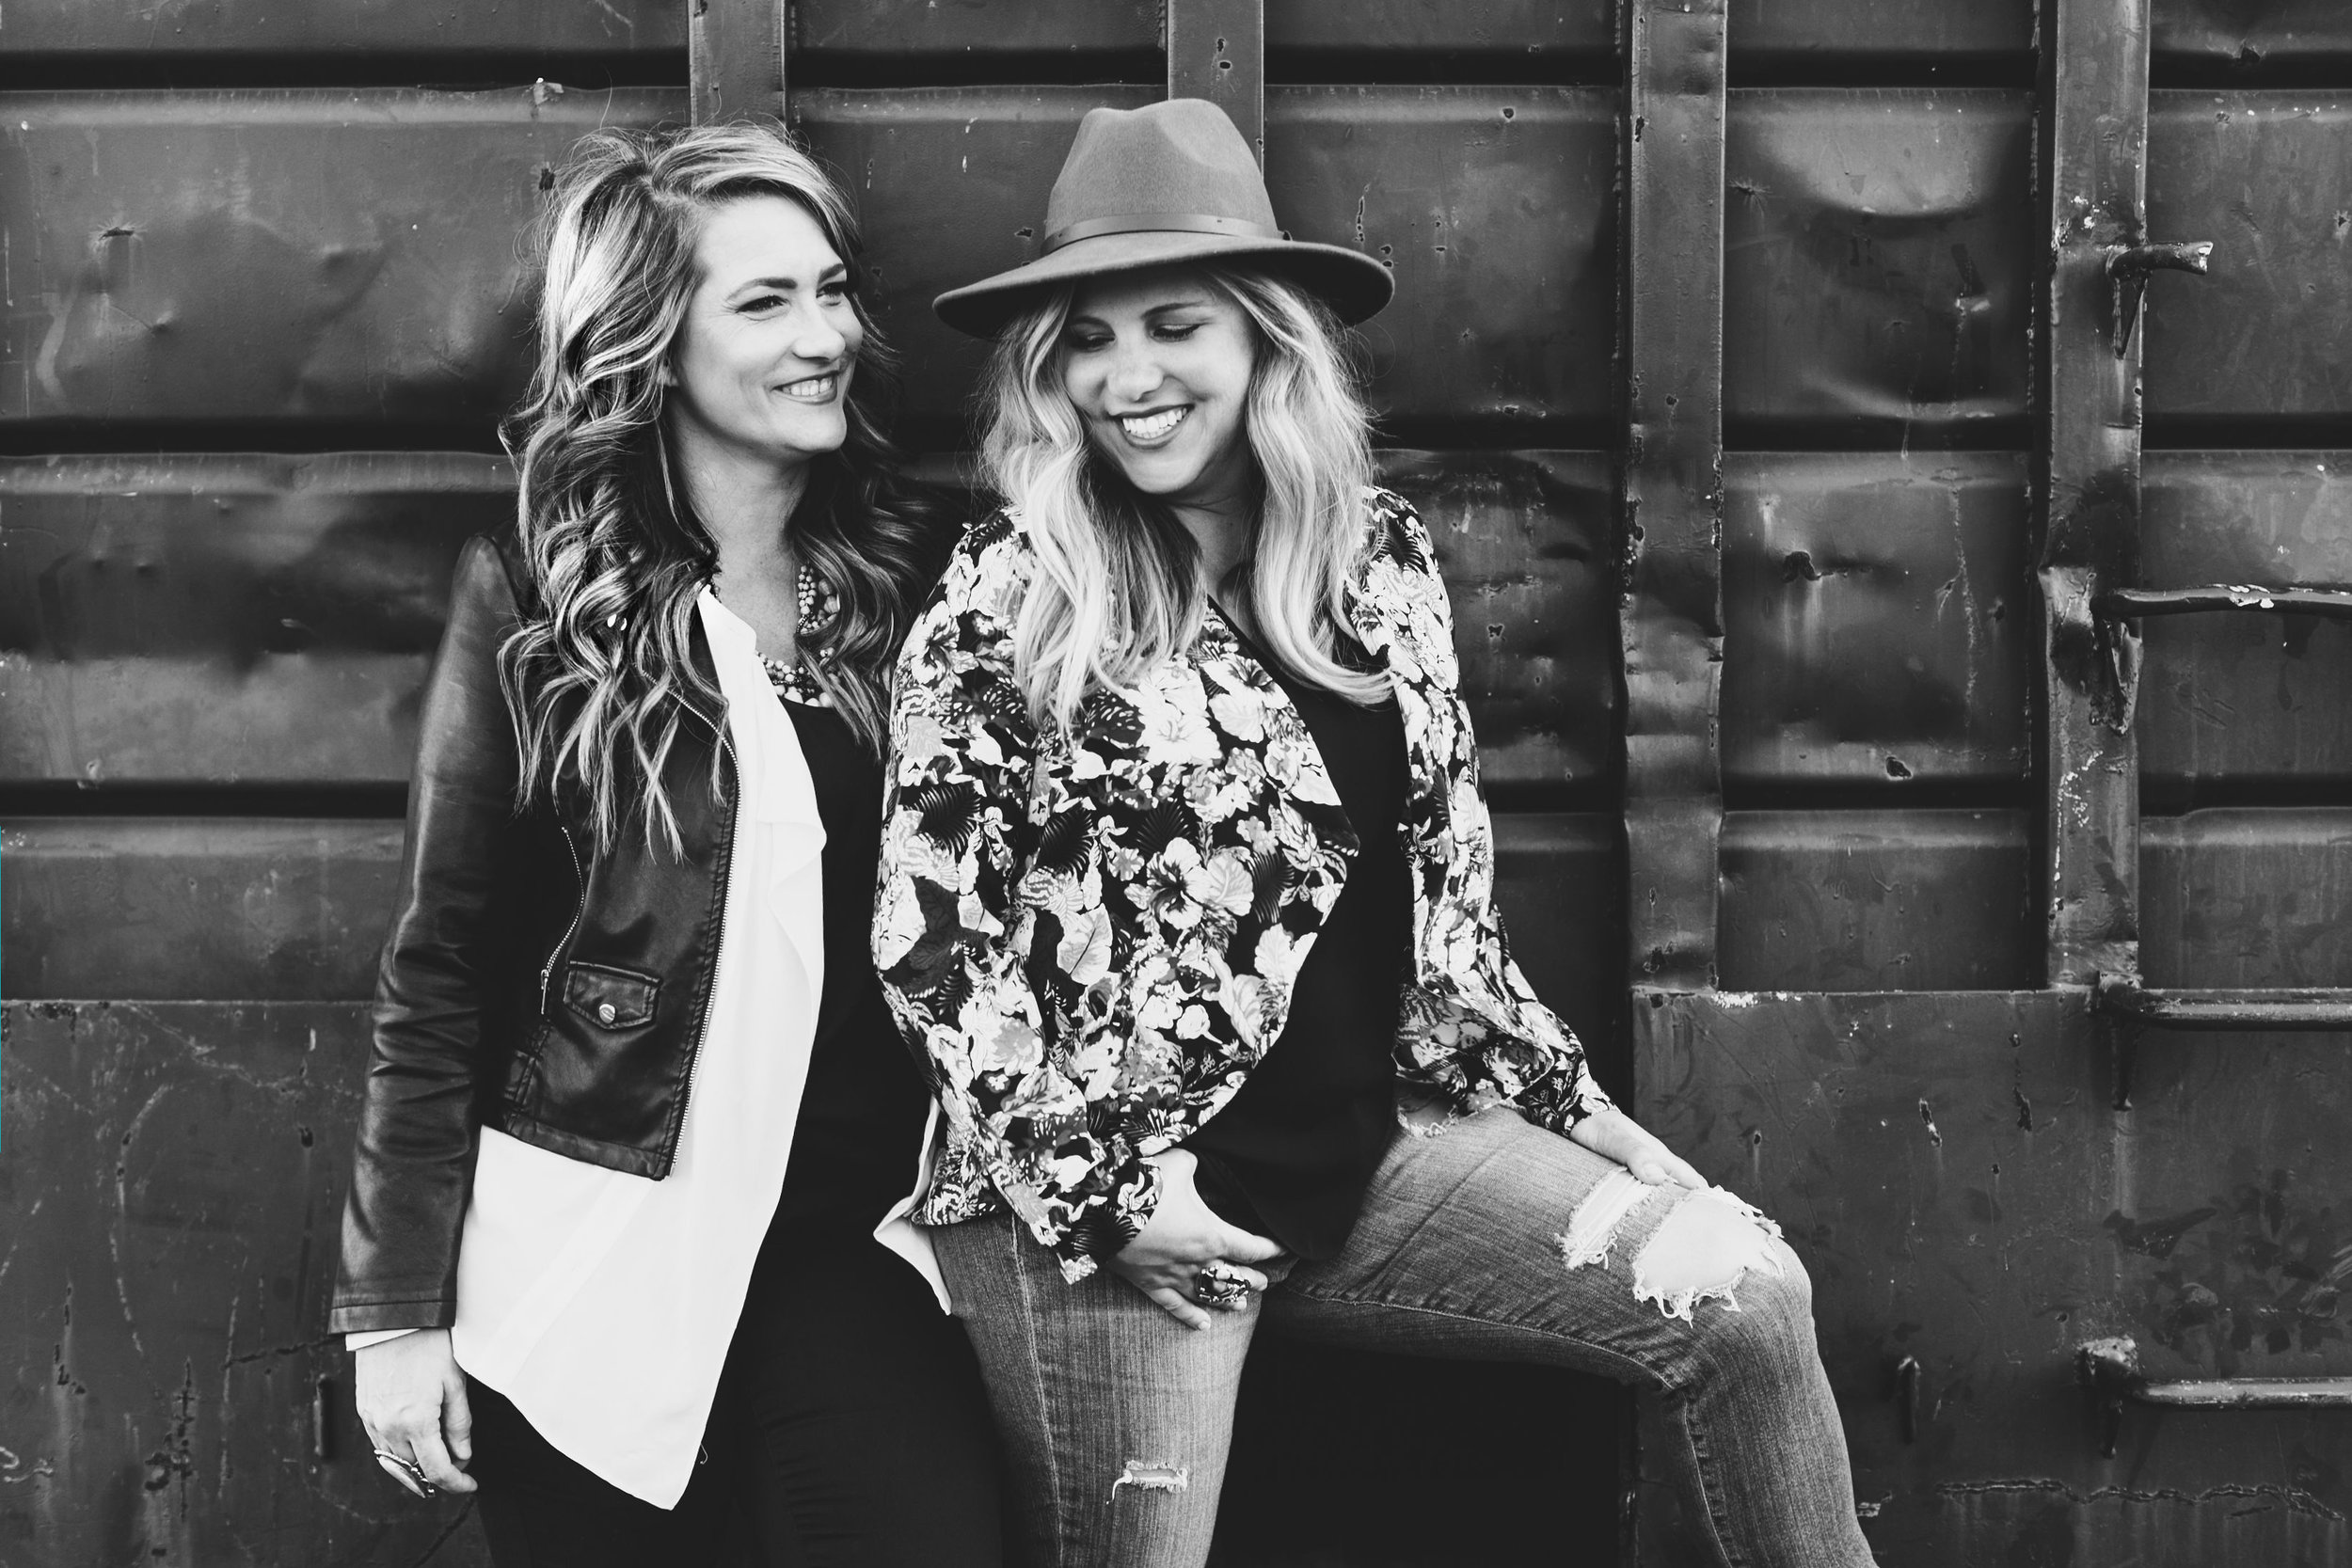 We're kristina + jo - Photographers for the daring and fashionable.